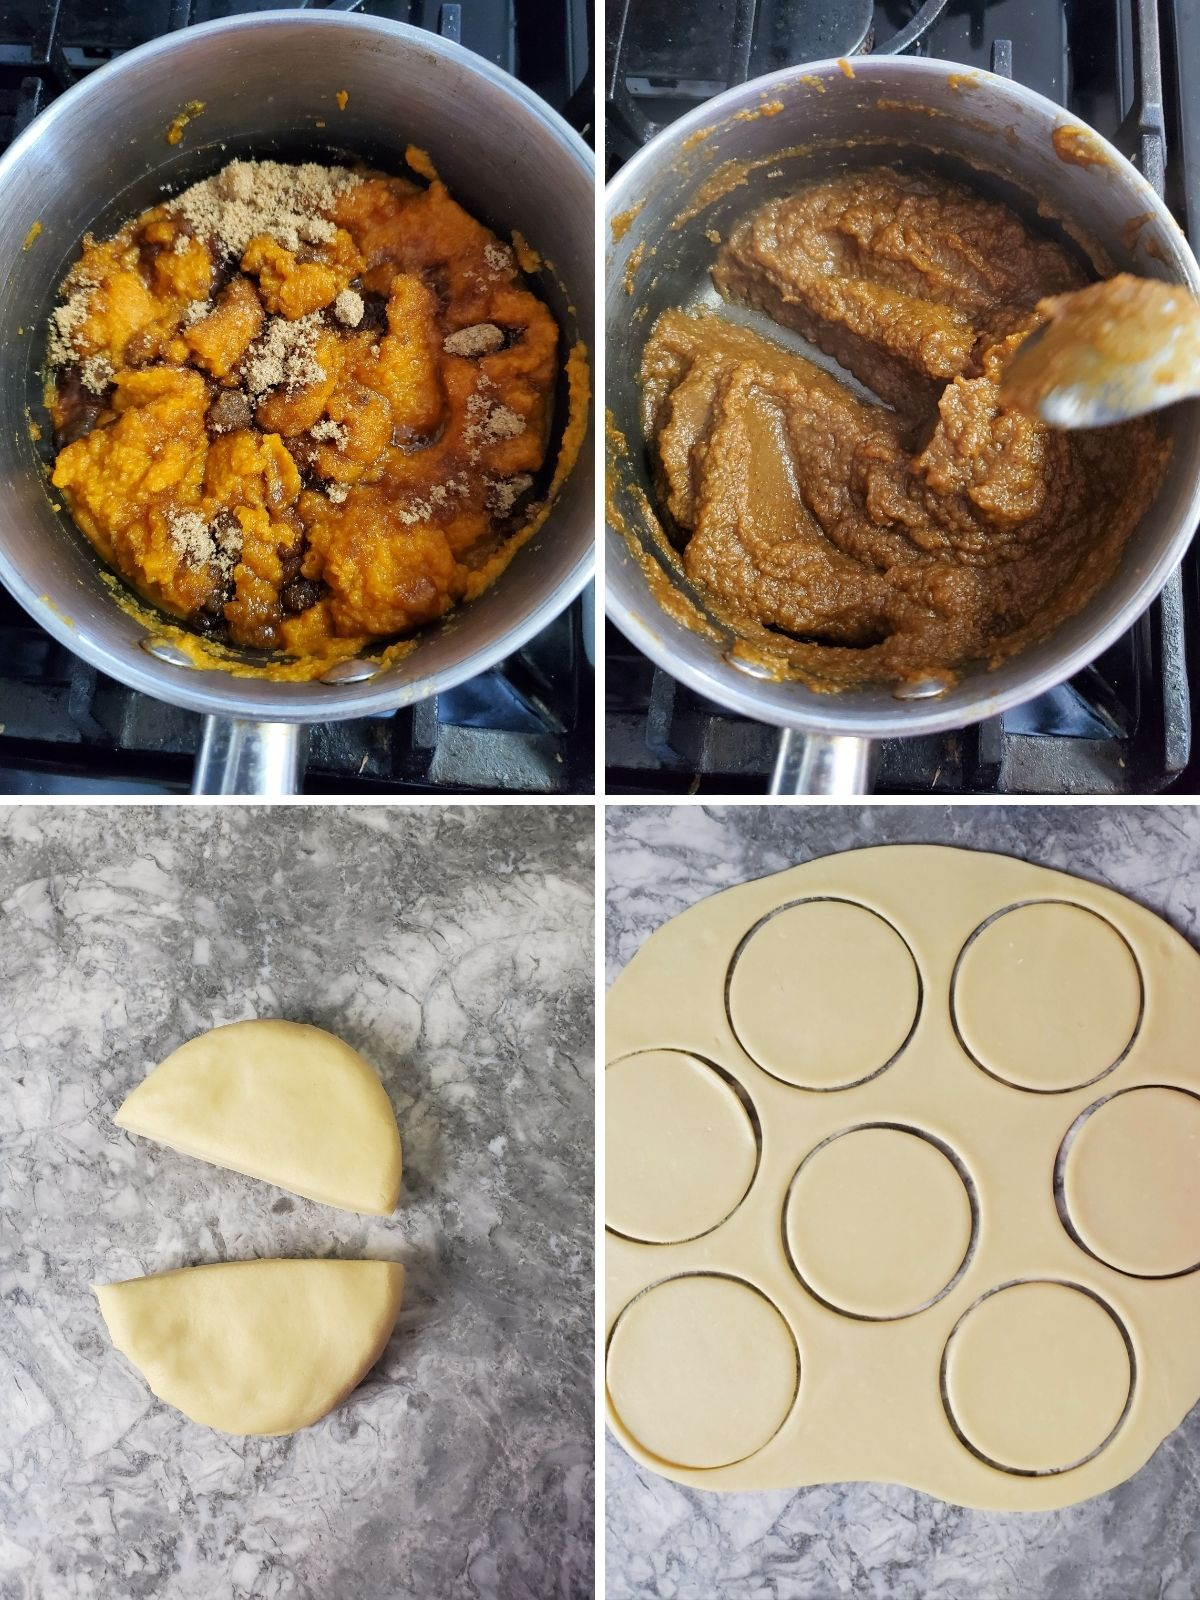 pumpkin filling in pot and rolled out empanada dough